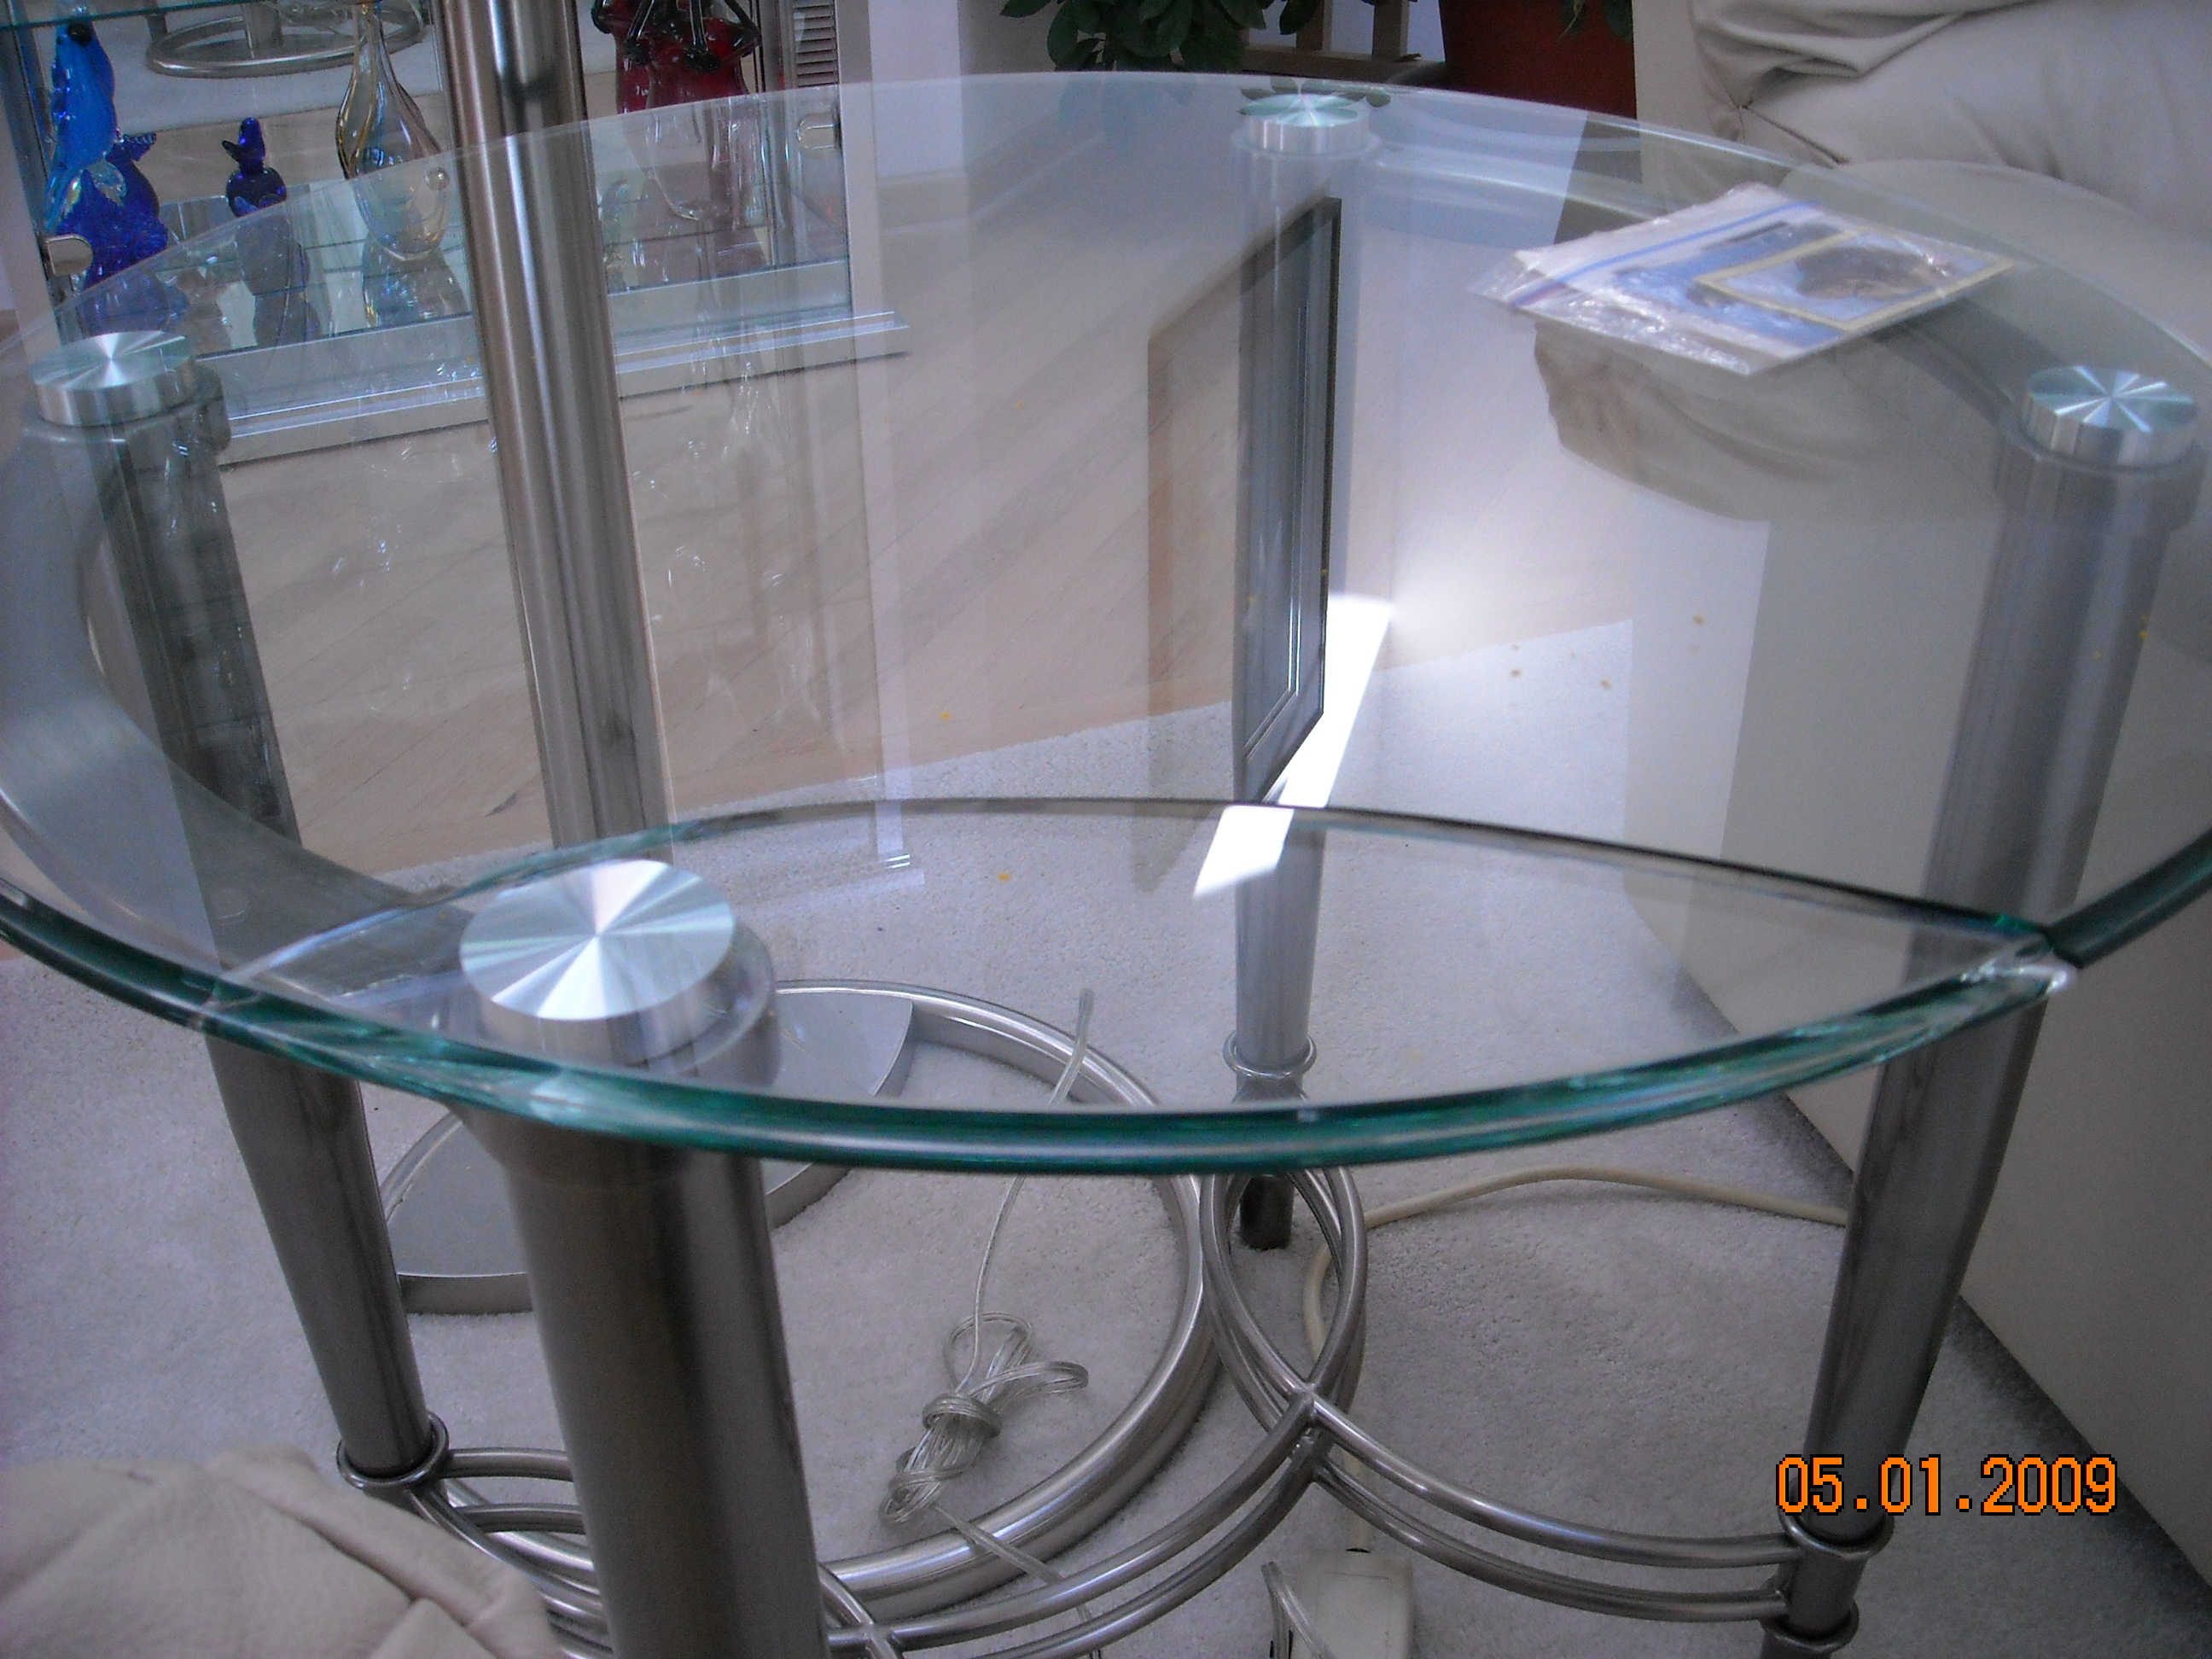 Cracked Glass Table Made by Progressive Furniture